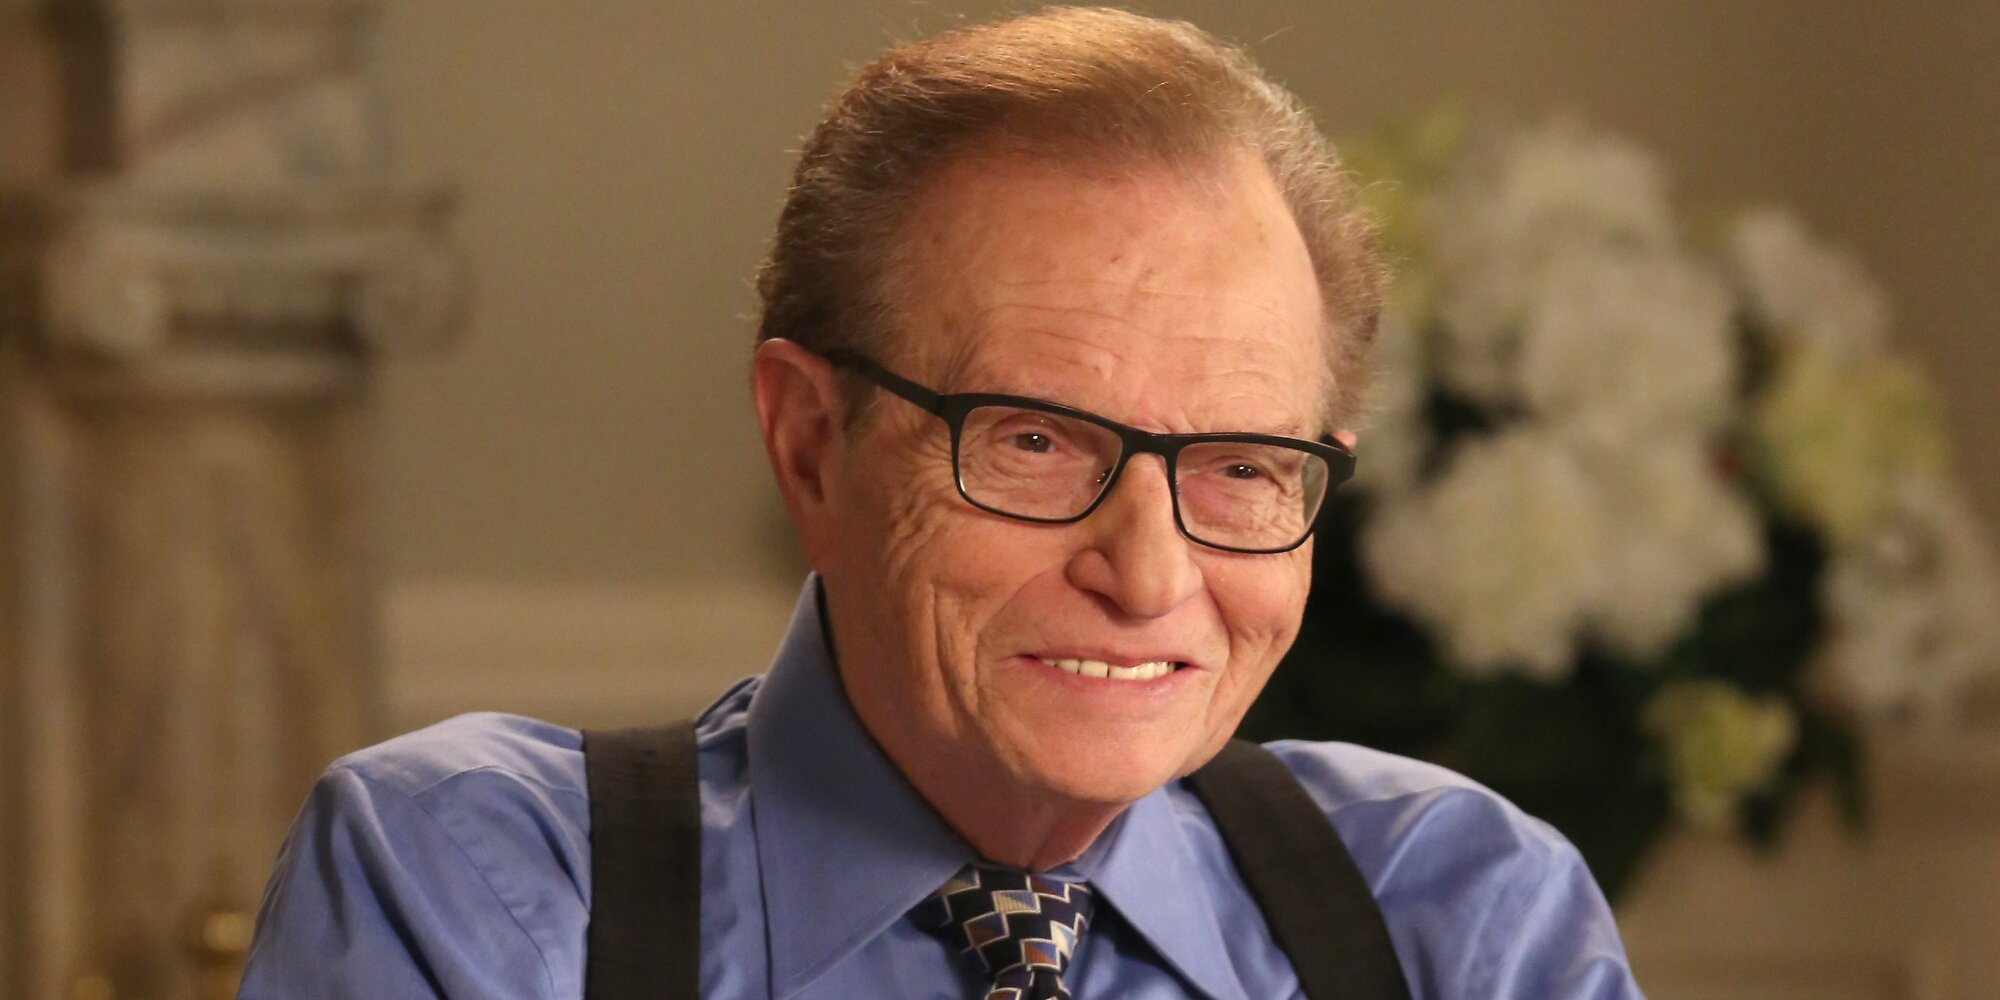 Stars remember Larry King, 'a true legend' and 'an American treasure'